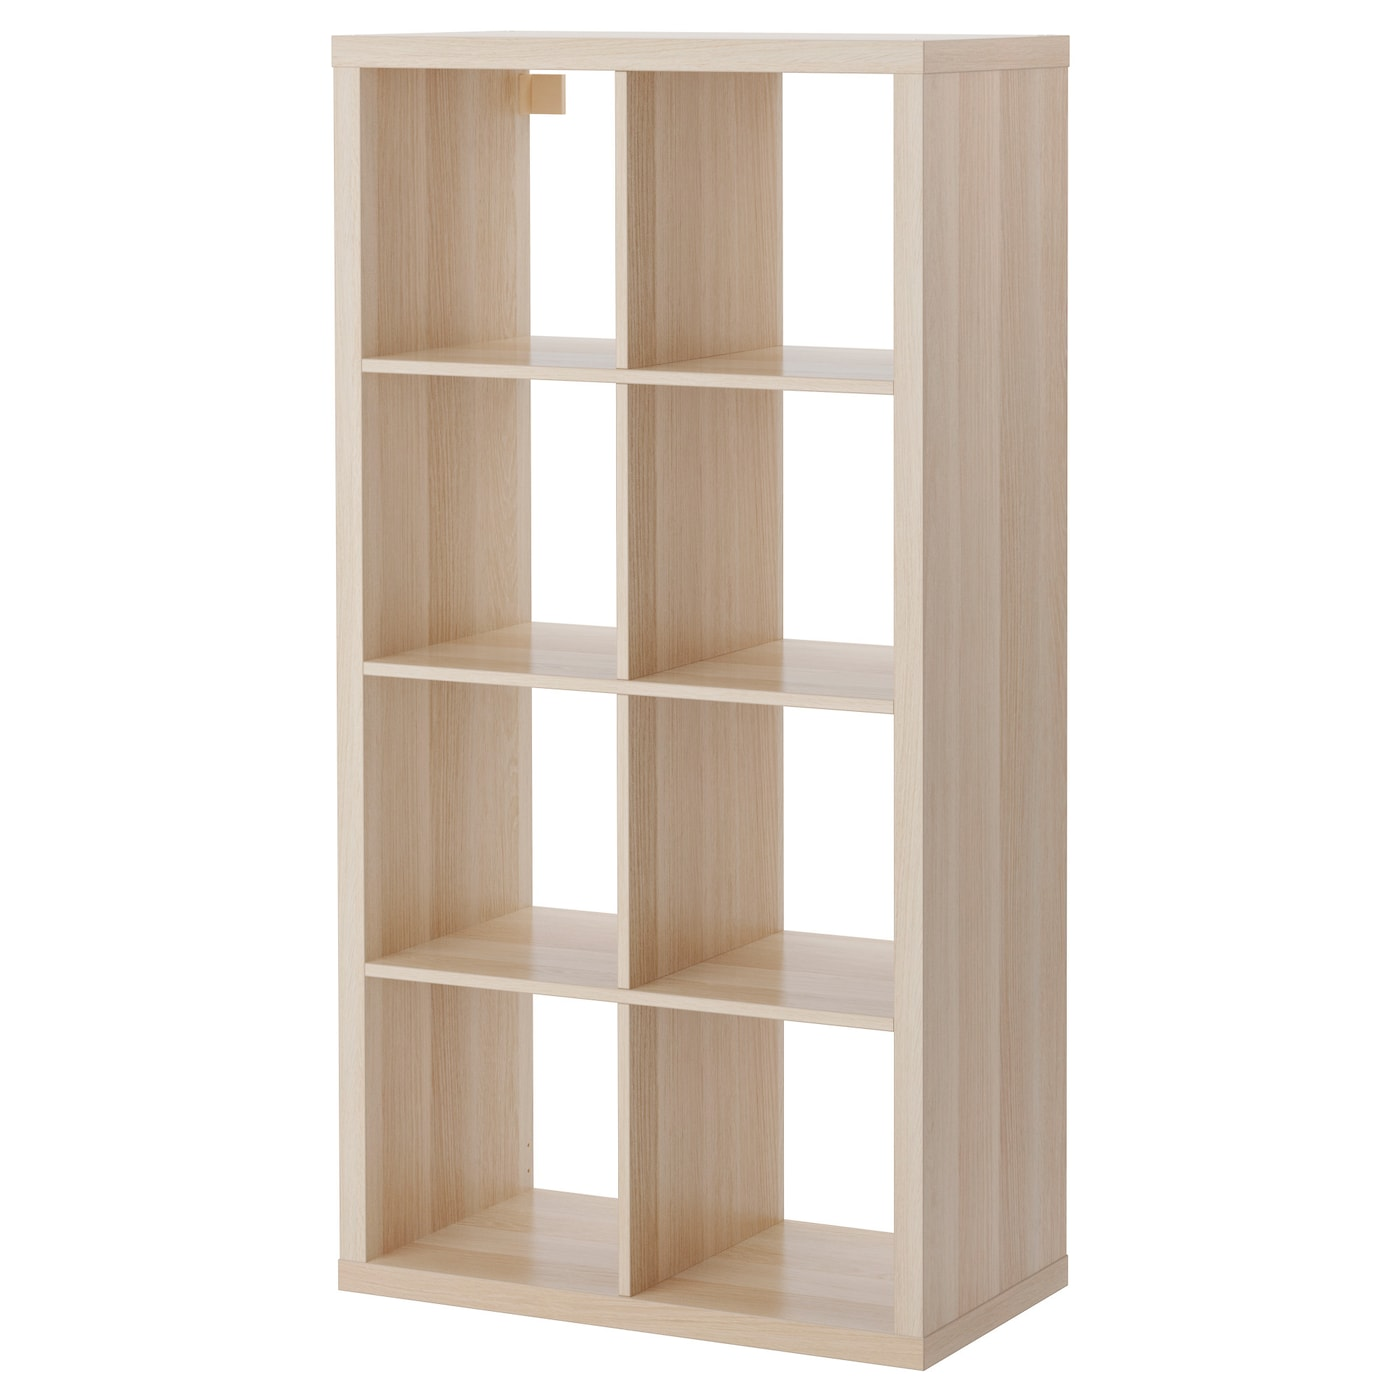 shelves home organizer shelf storage bookcase cubes itm bins level cabinet furniture ebay